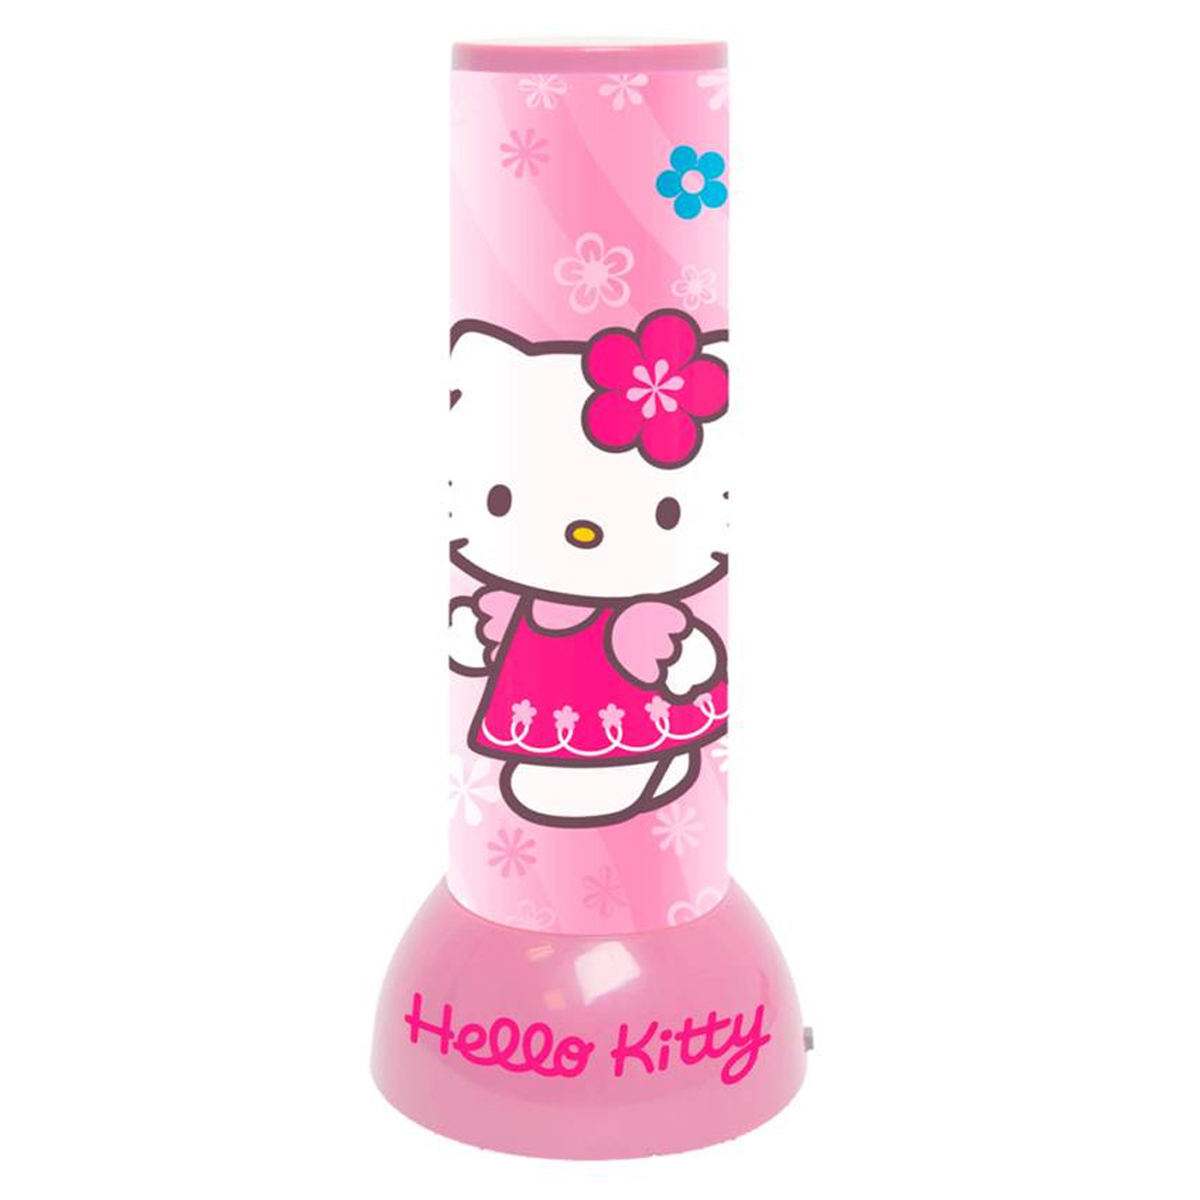 Lampe veilleuse \'Hello Kitty\' rose - 19x8 cm - [R2546]